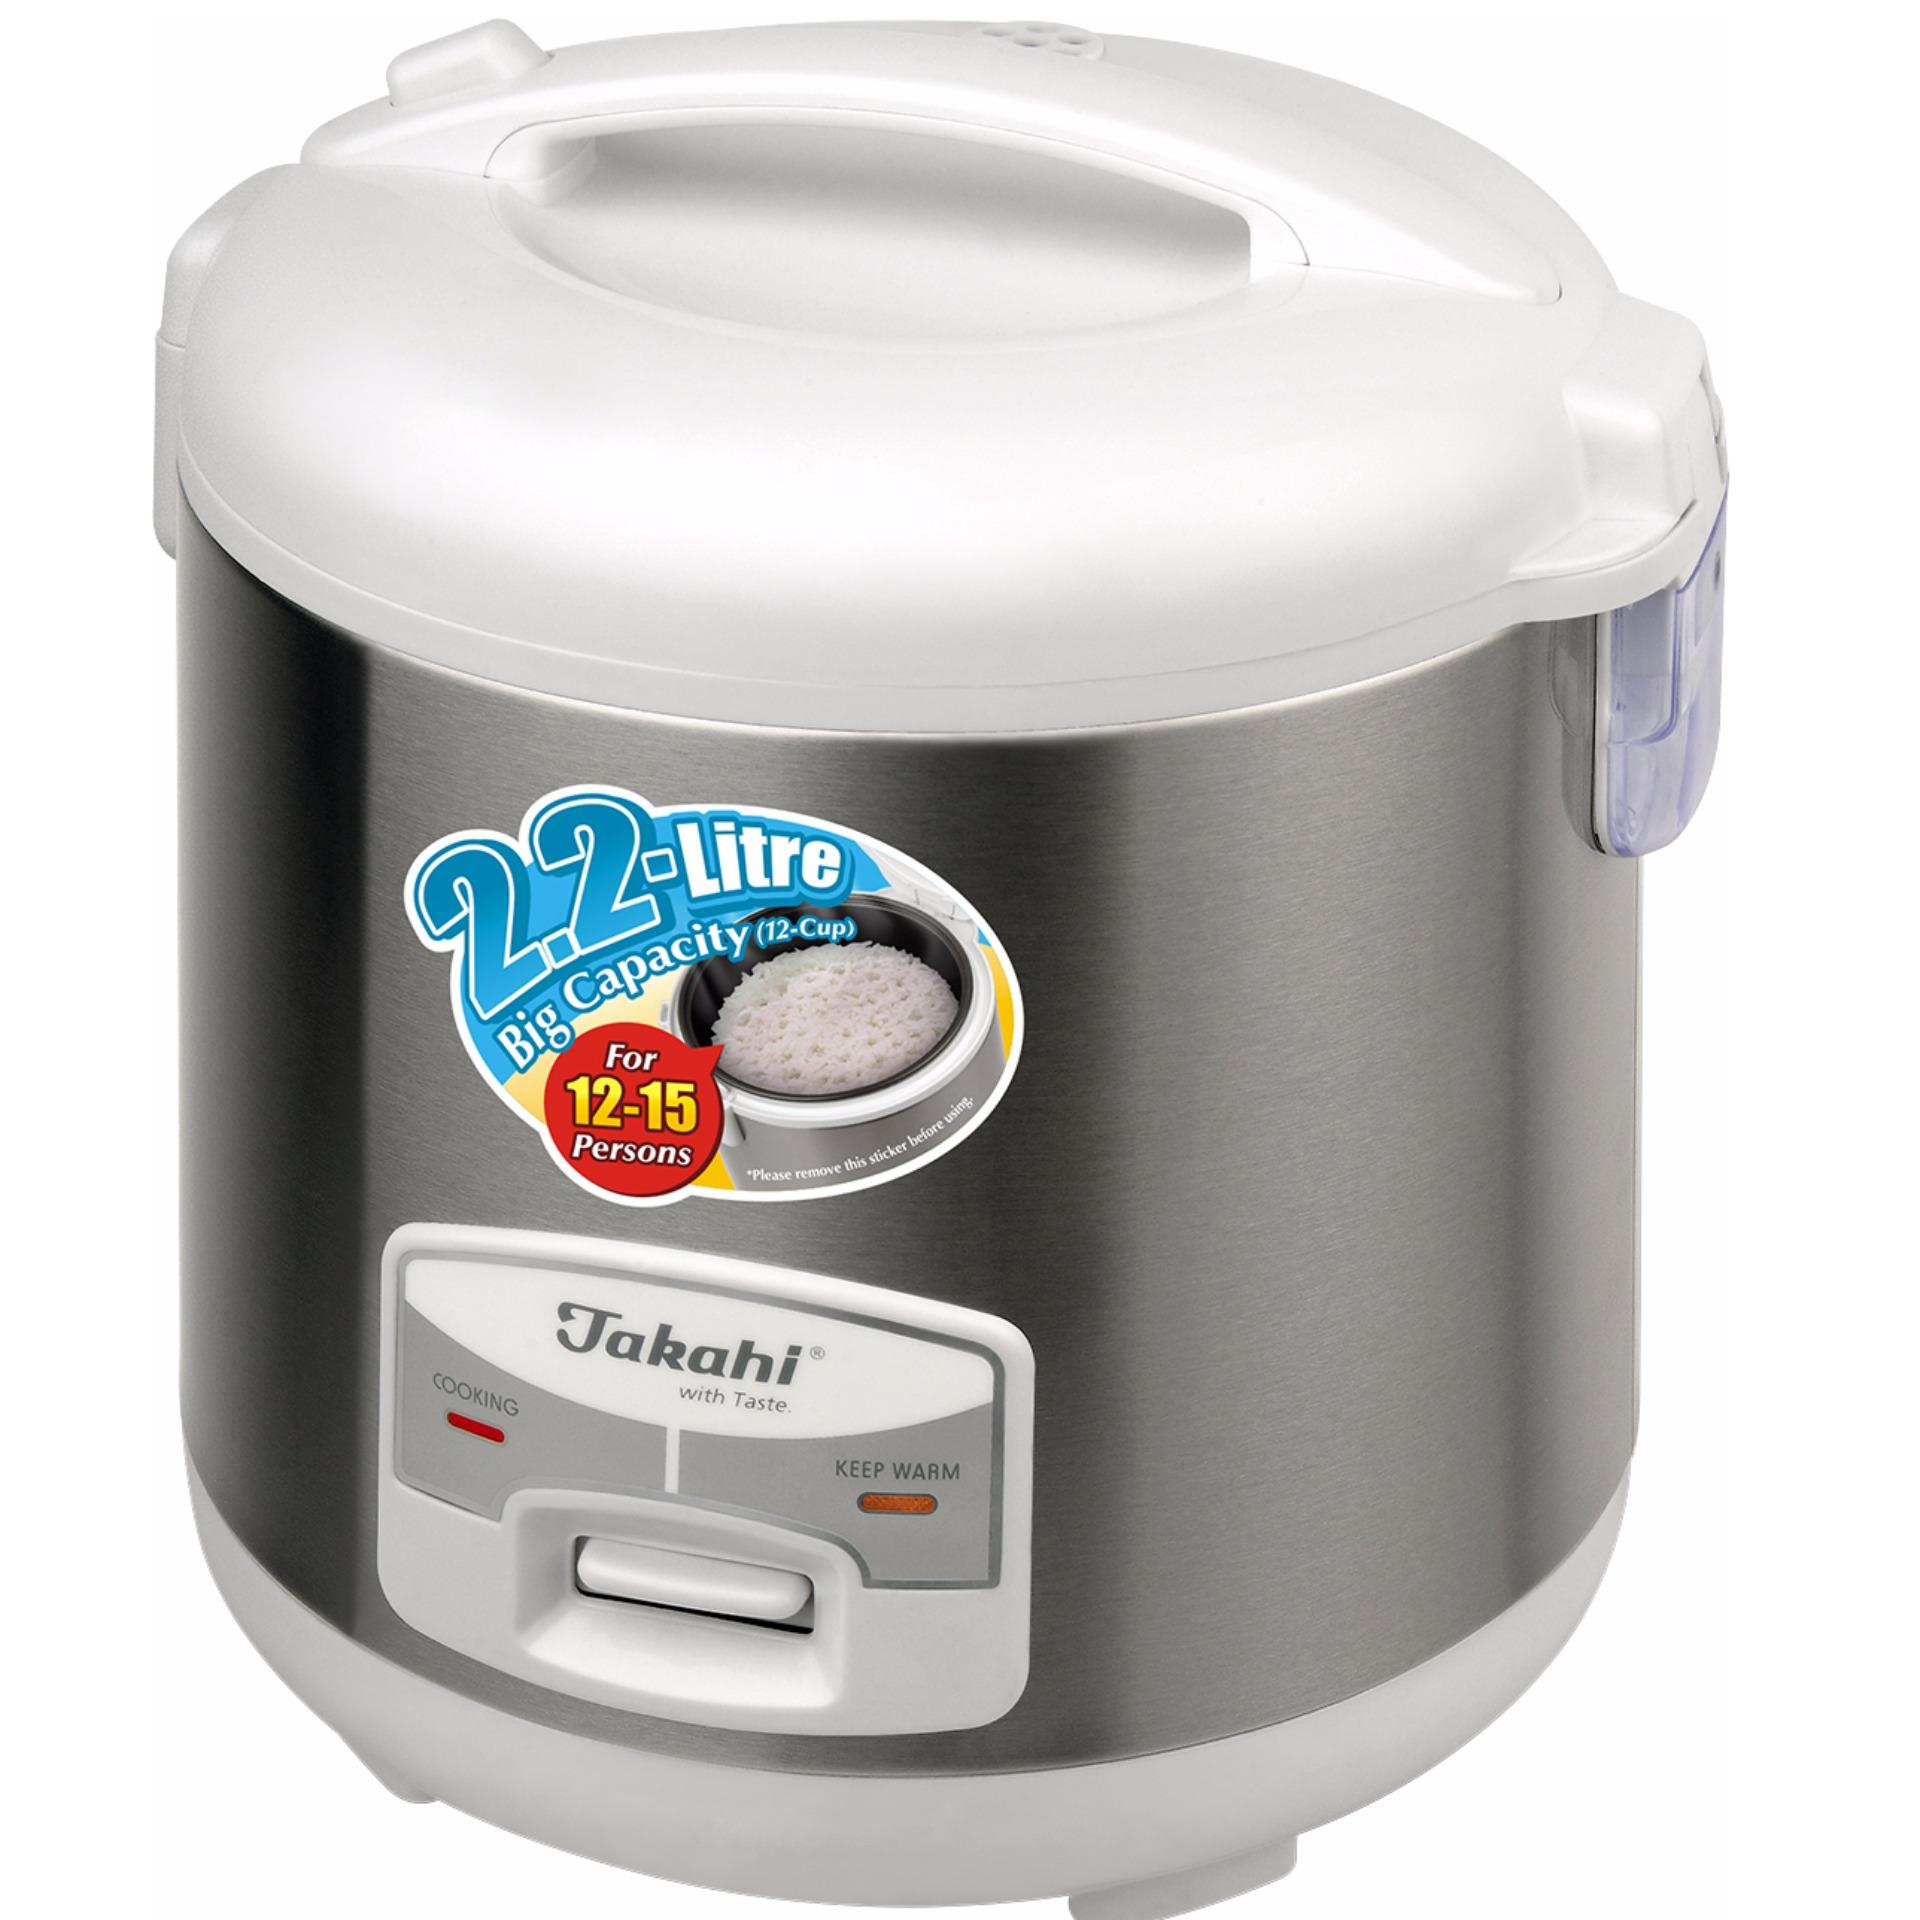 ... Takahi 1630 12-Cup Electric Rice Cooker With Warmer (SilverGrey/White) ...